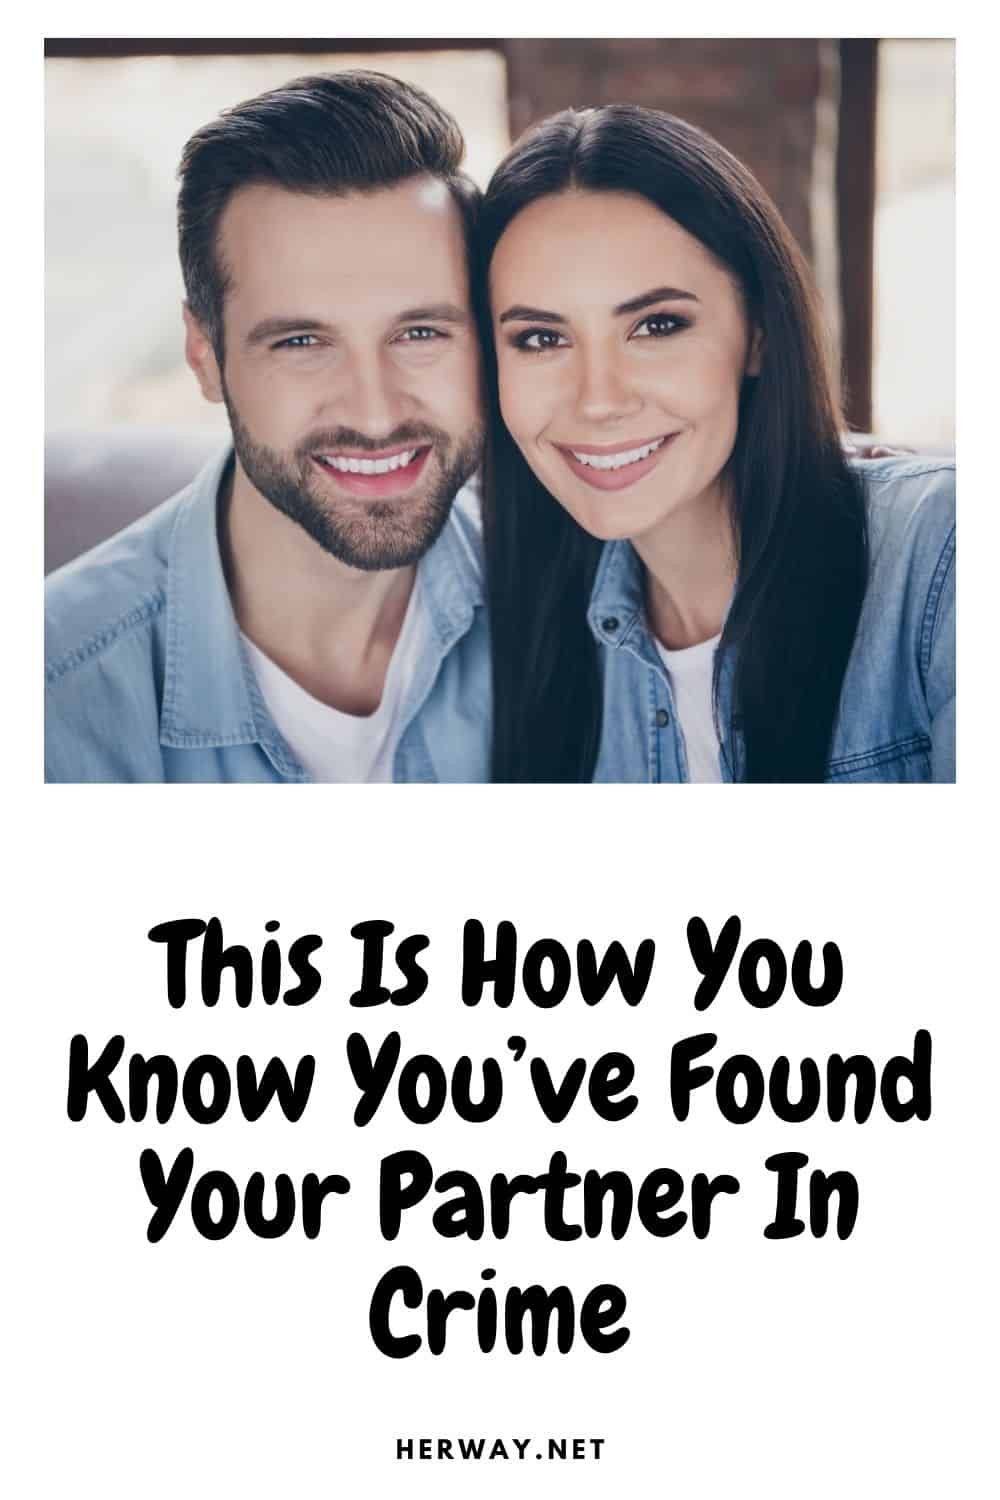 This Is How You Know You've Found Your Partner In Crime